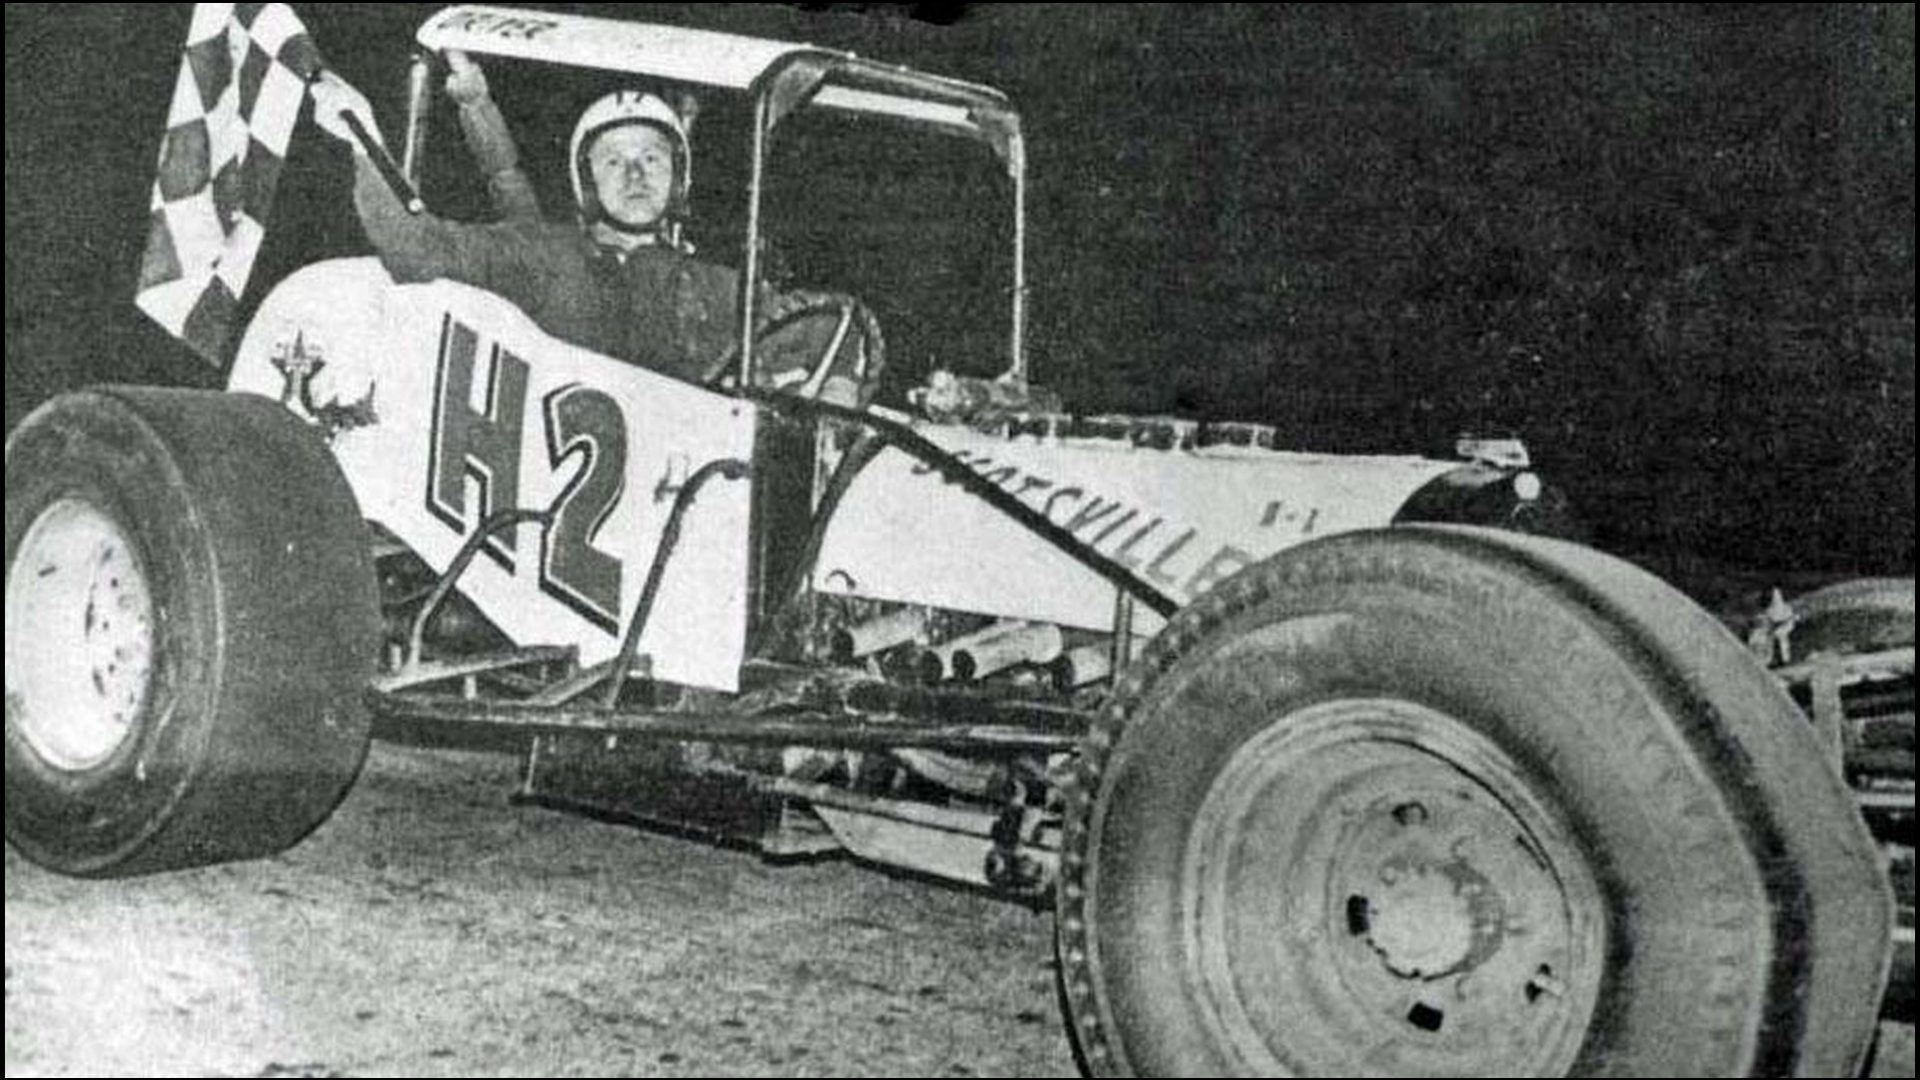 Charlie-McCann-in-Victory-Lane-at-Delaware-Speedway-in-1967.-Courtesy-of-Glen-Tustin